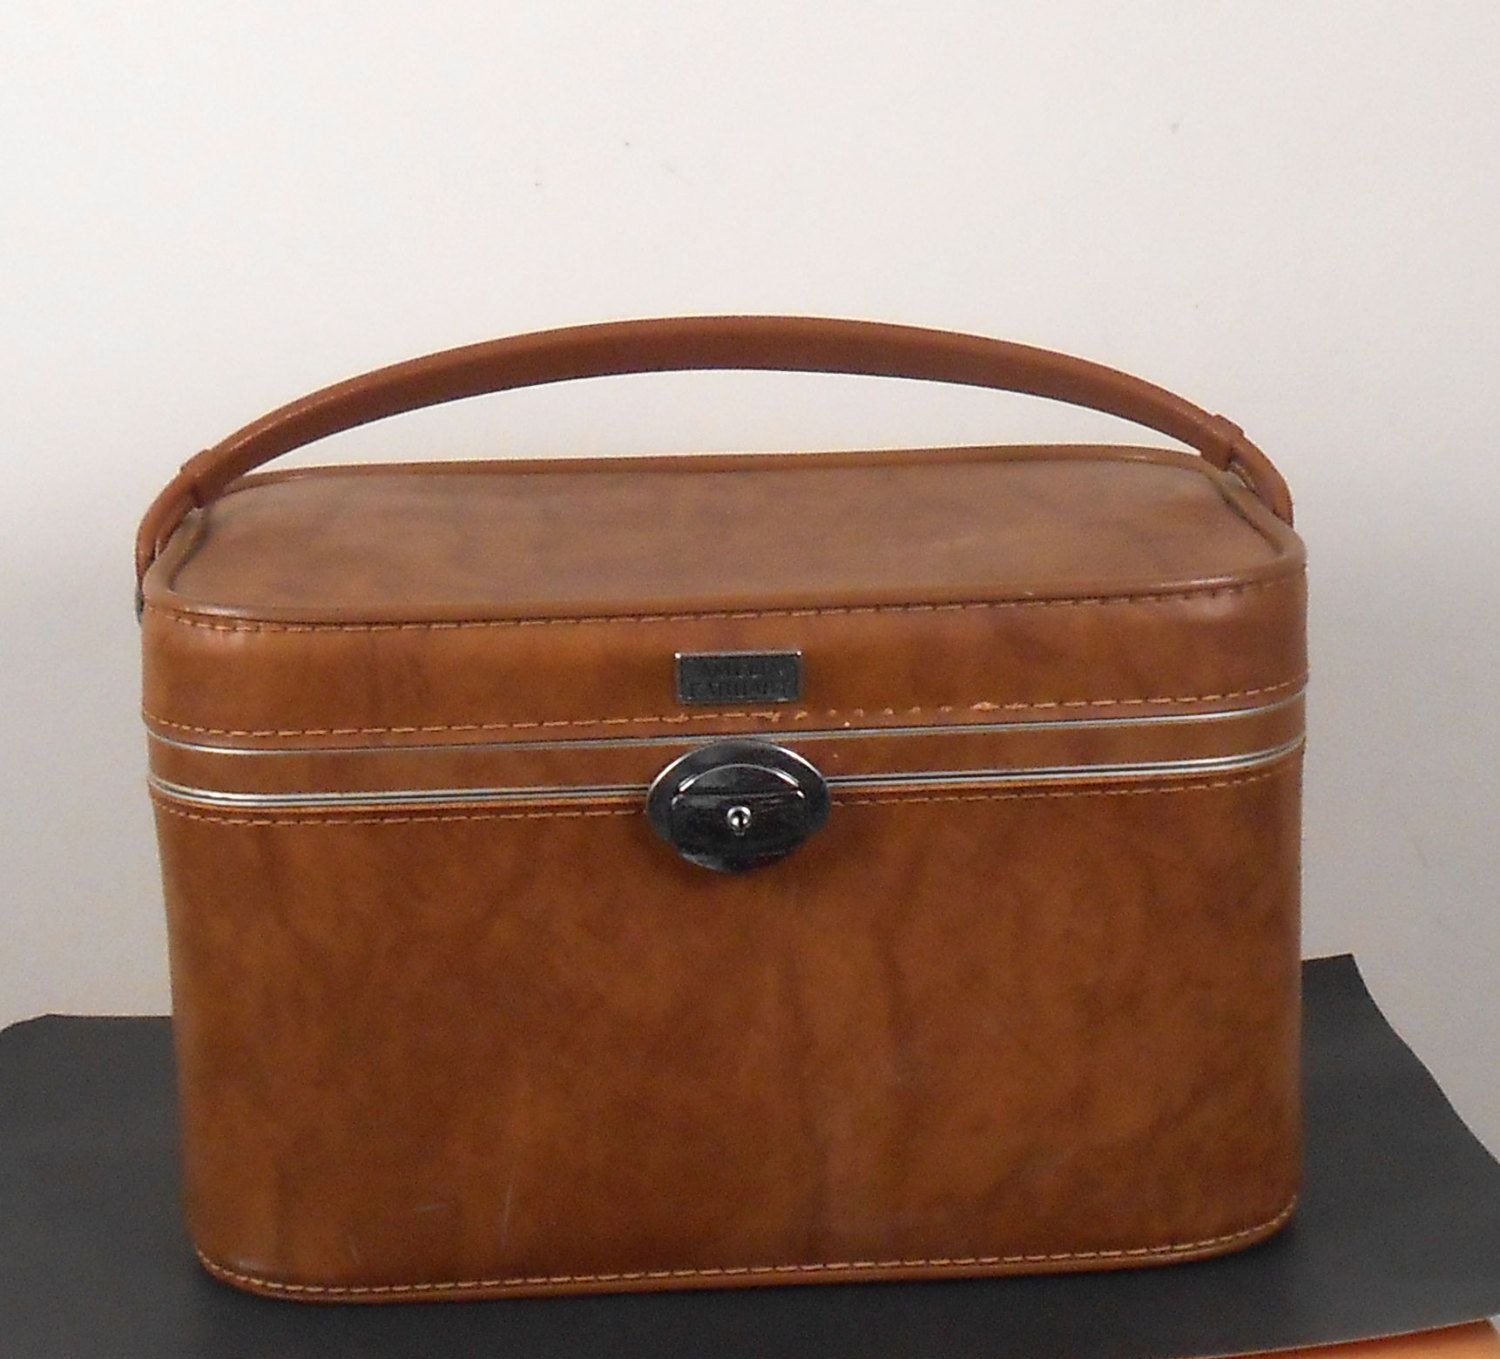 Amelia Earhart Cosmetic Bag Brown Luggage Travel Case